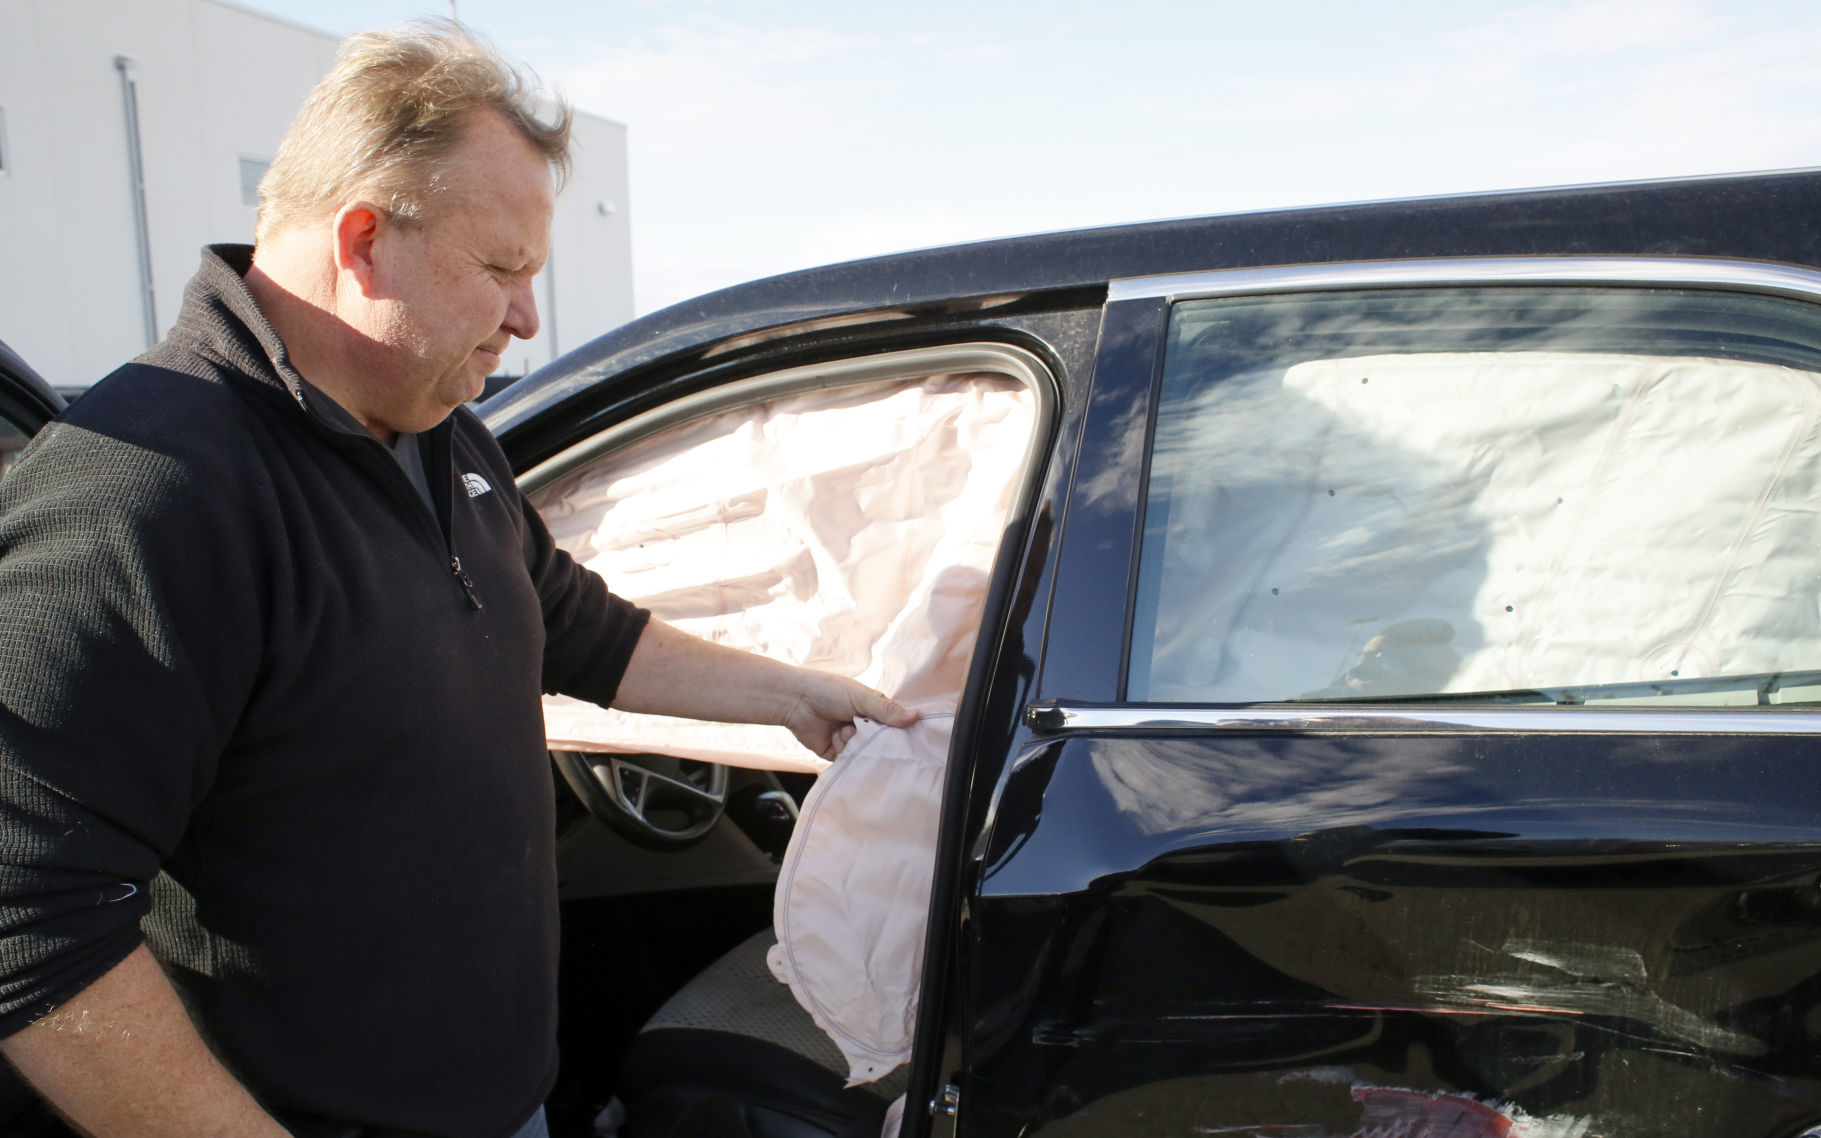 High Tech Safety Comes With High Cost Automobile Repairs Business News Bismarcktribune Com